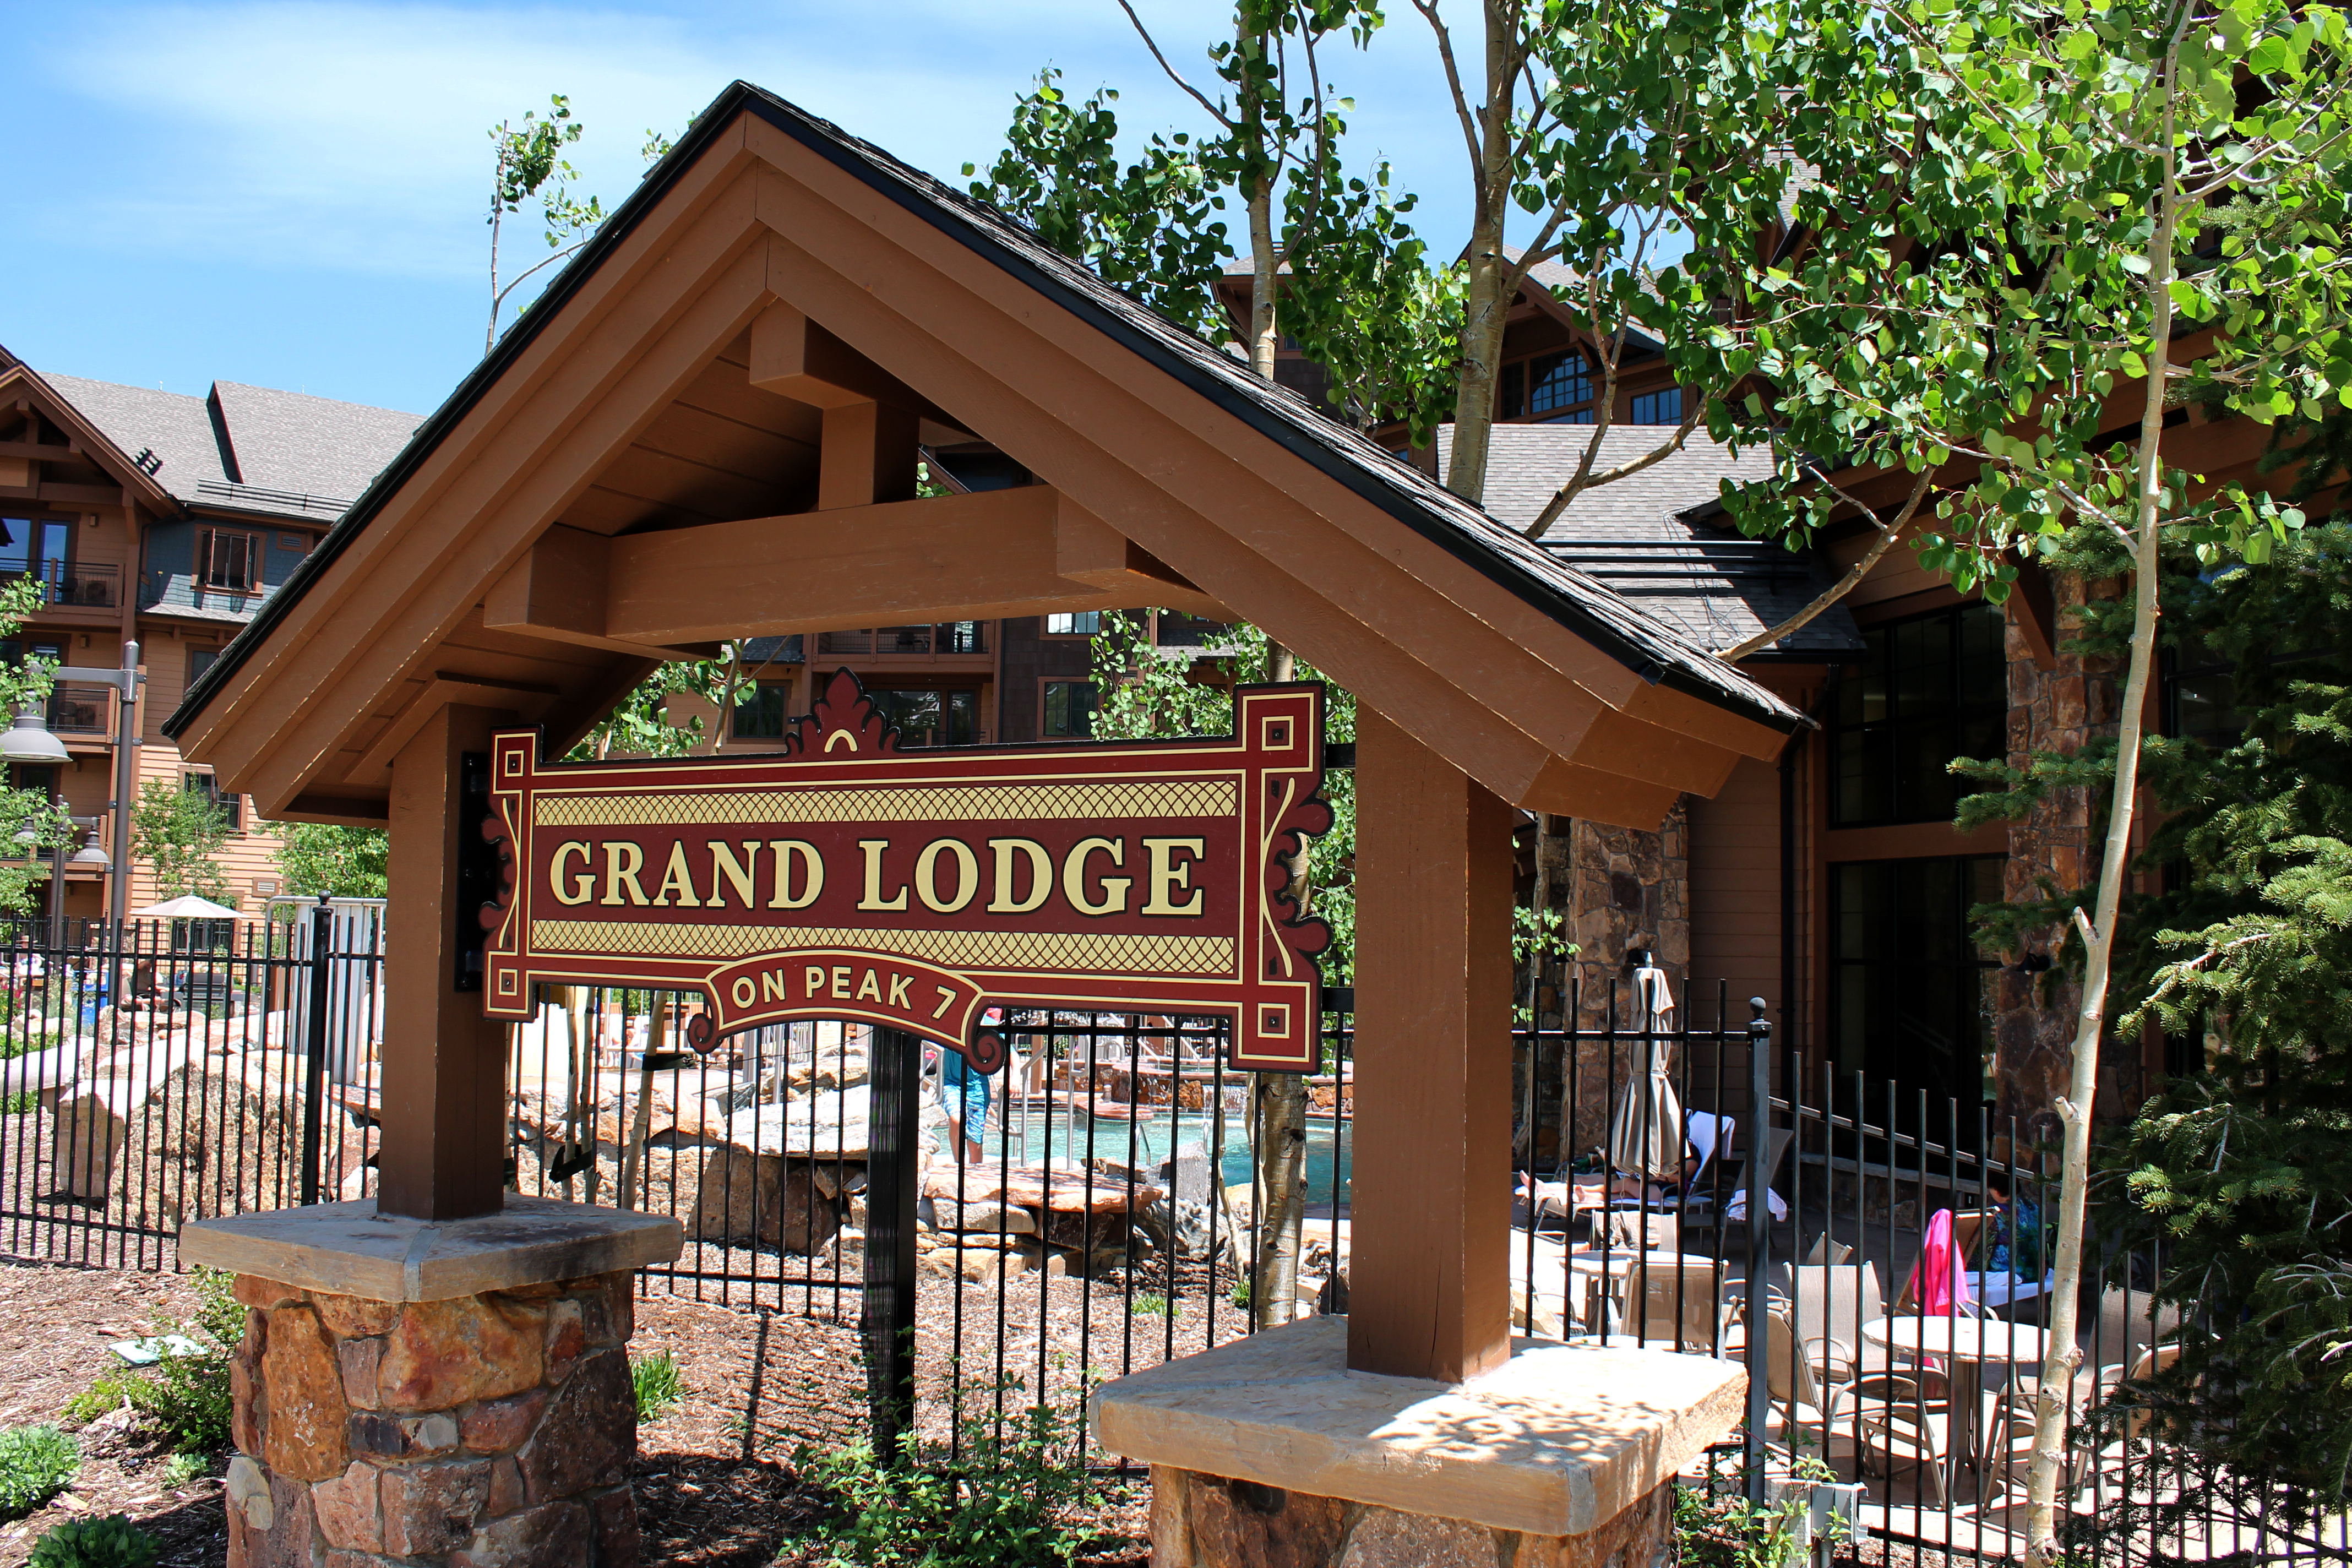 Grand Lodge On Peak 7 Property Information Breckenridge